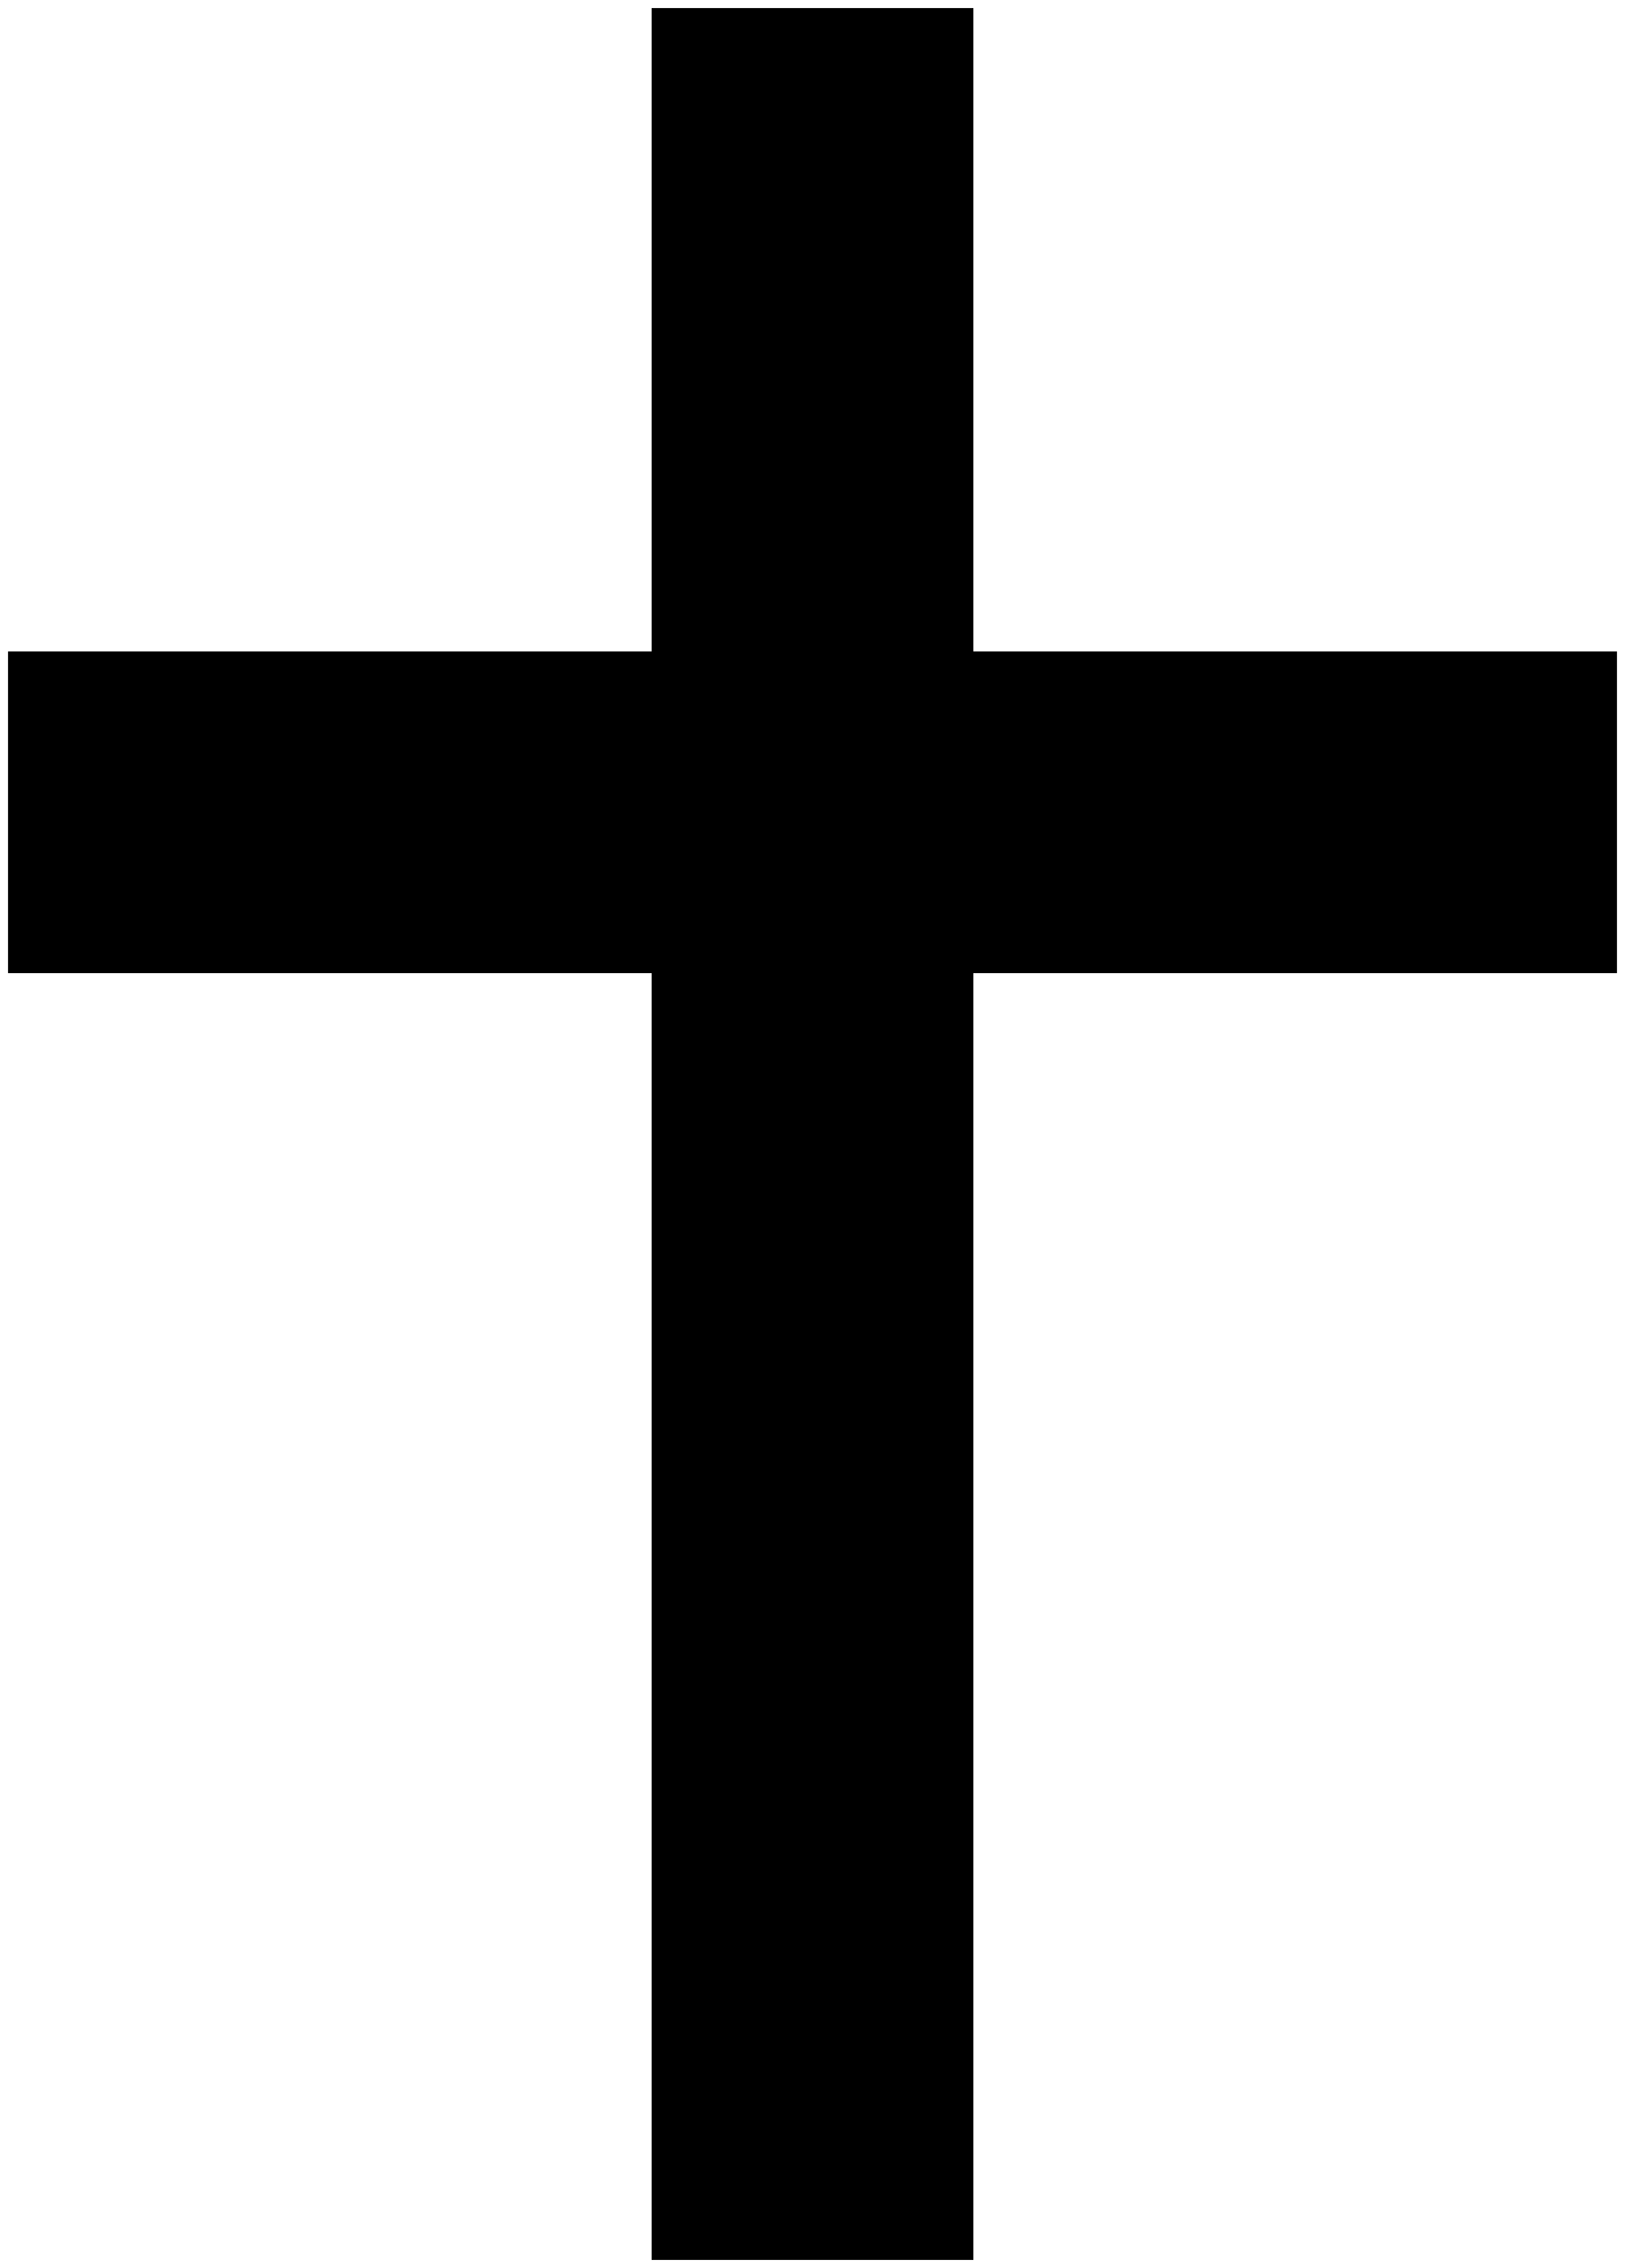 Simple christian cross transparent. May clipart religious